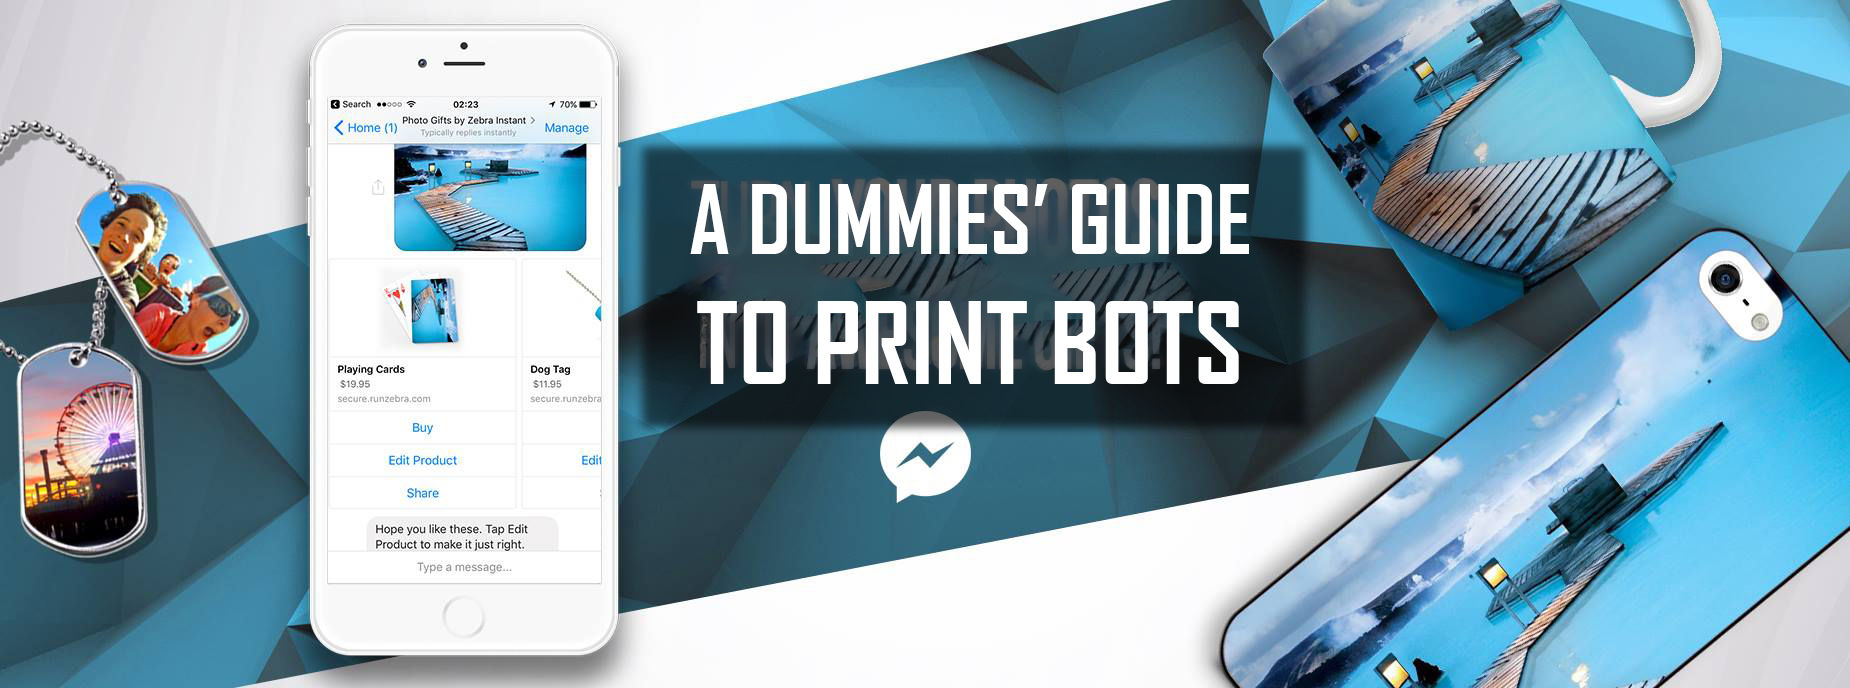 a dummies guide to print bots chatbots for printed products